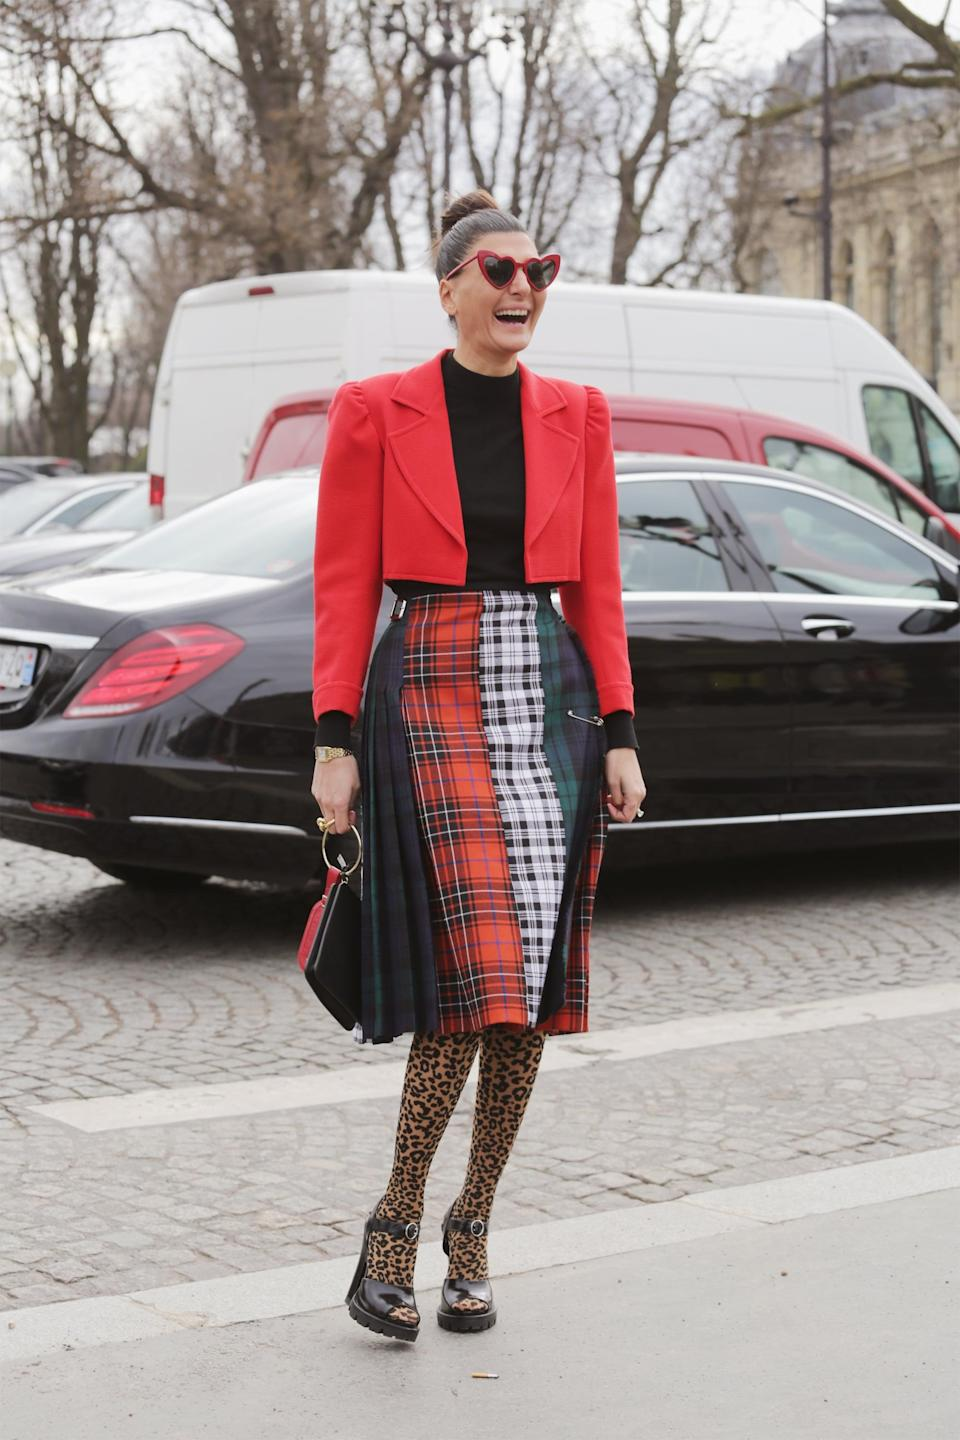 <p>While plaid is always somewhere in the Fall array of trends, it's bolder than ever, come this season. The single statement piece has gotten more colorful, more voluminous, and more head-turning, while many are even styling a mixing-and-matching selection from head-to-toe. Dior showed off brightly-toned woven midi skirts, Vera Wang went for full-suiting looks, and Burberry jumped into the outerwear game, designing everything from trench coats to puffers.</p>